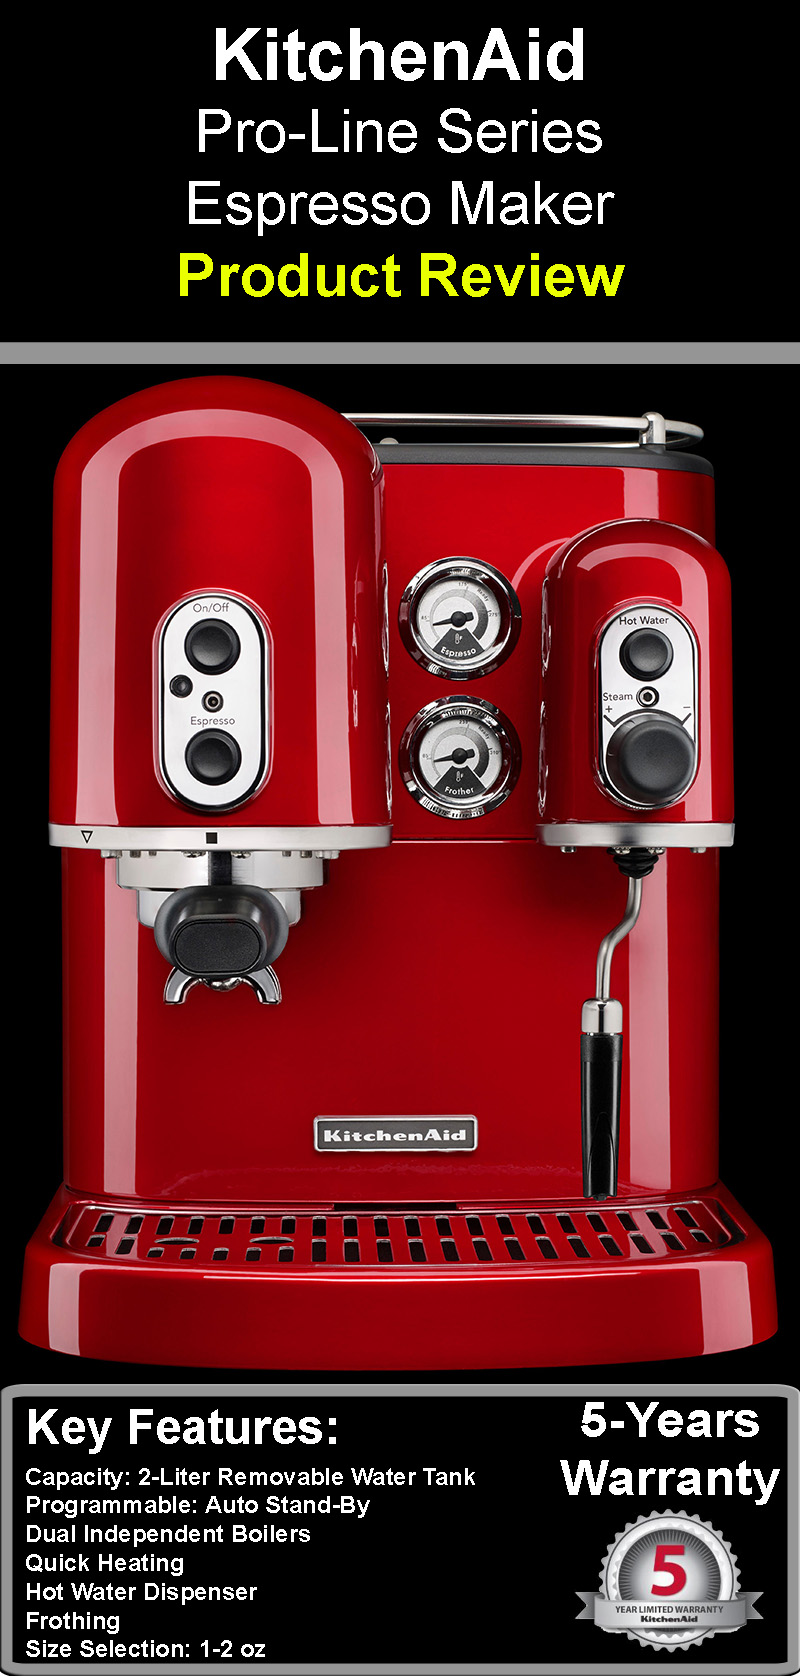 Hervorragend Kitchen Aid Pro Line Series Espresso Maker: Product Review